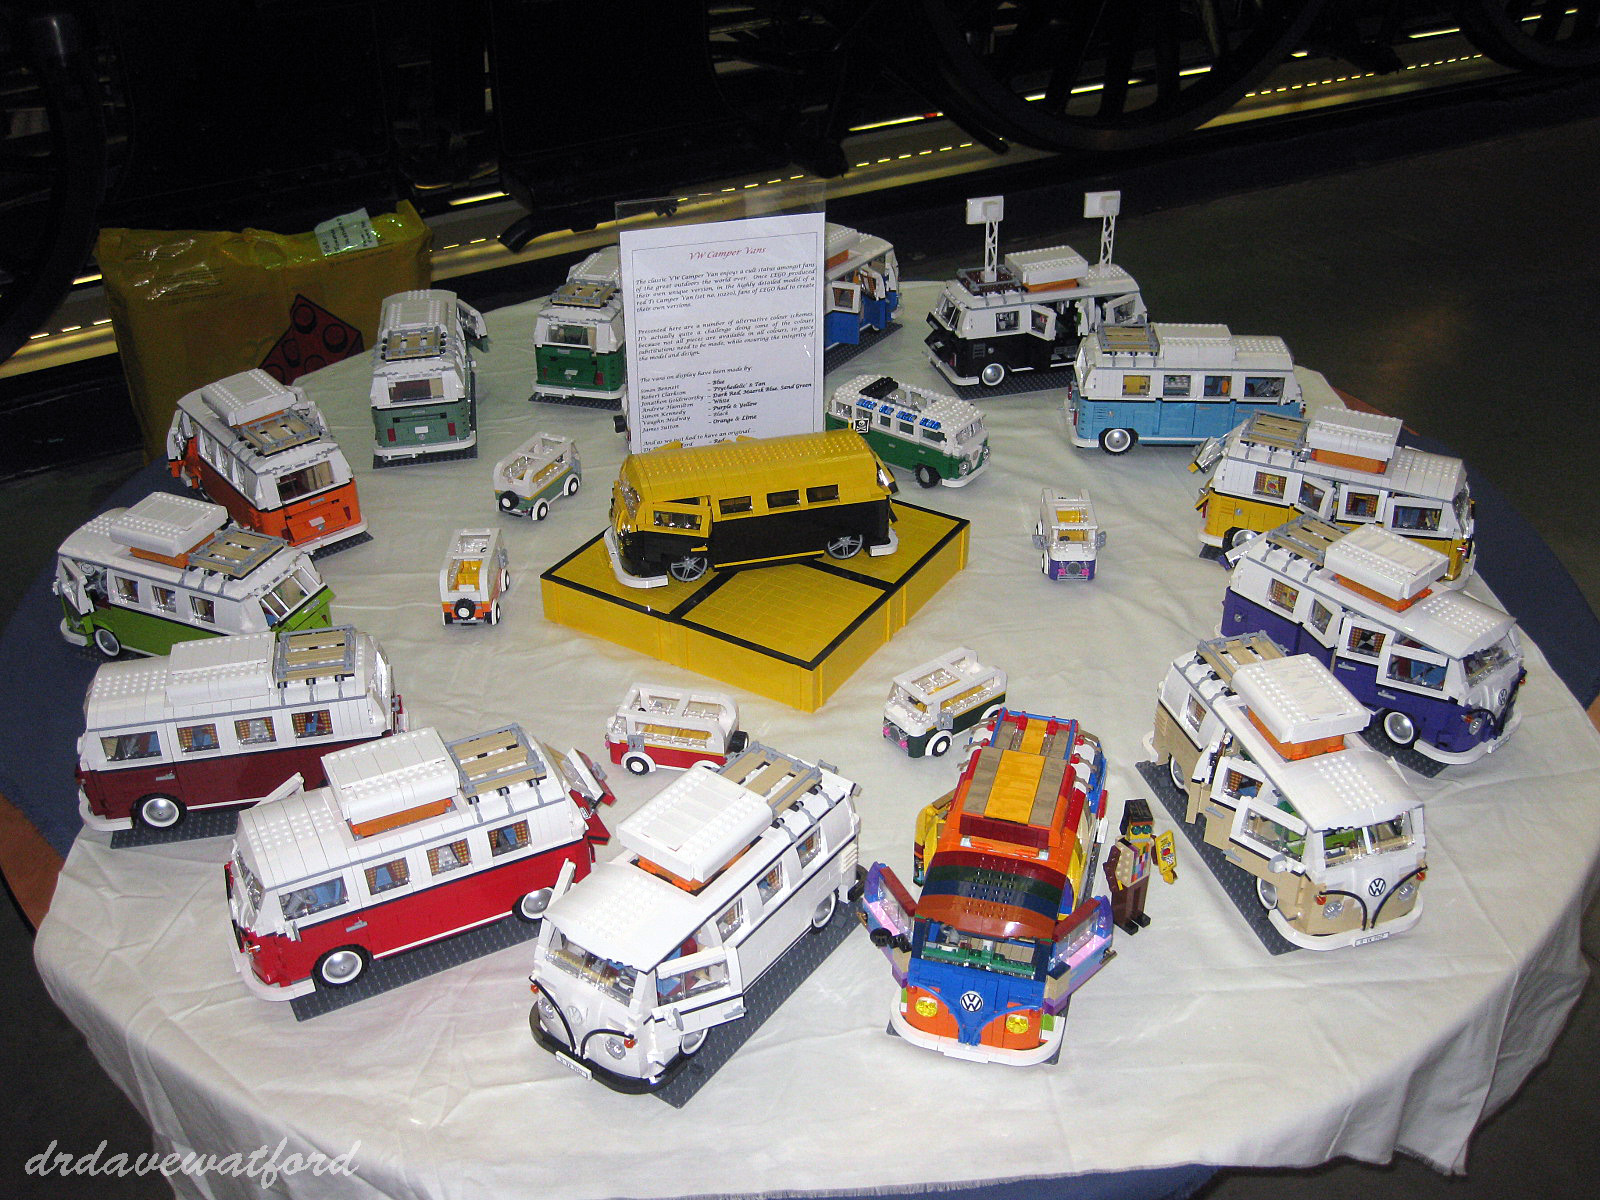 Customizing the vw camper van 10220 brickset forum - Lego brick caravan a record built piece by piece ...